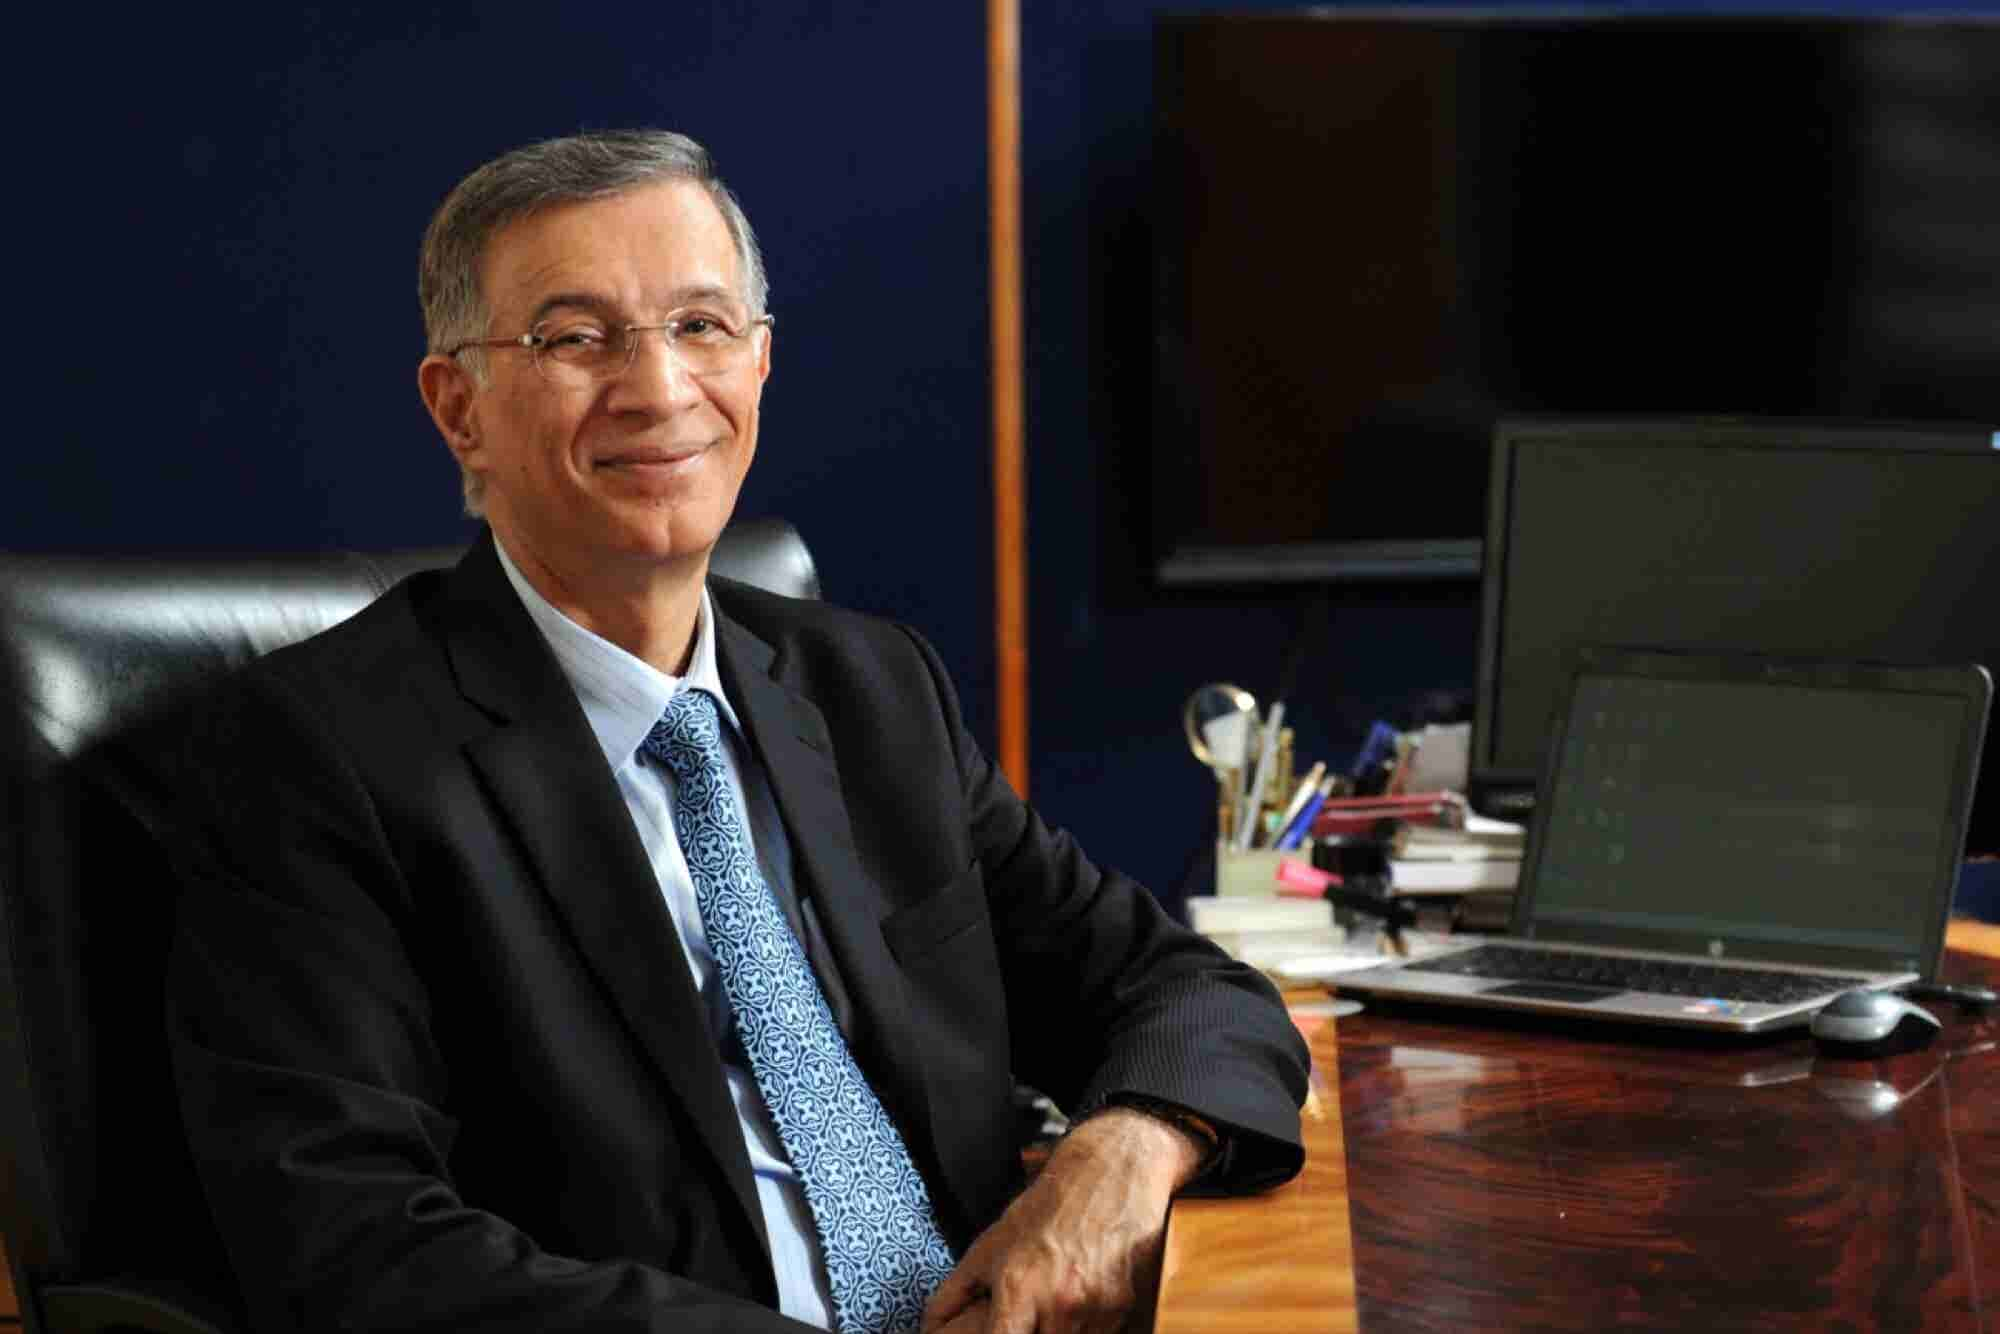 One of India's Top #100 Richest Entrepreneurs says Time Ripe to Invest in India